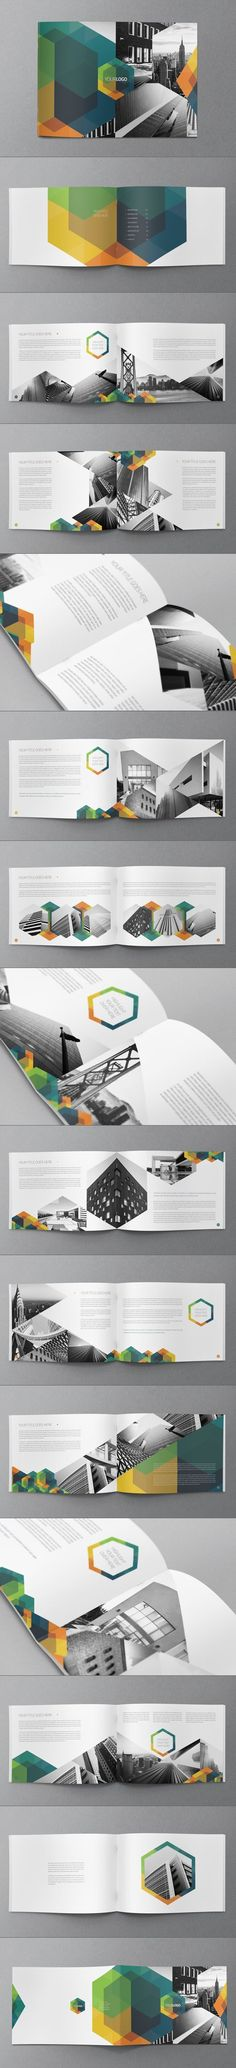 Creative Design, Brochure, Graphic, Layout, and Hexo image ideas & inspiration on Designspiration Layout Design, Graphisches Design, Buch Design, Graphic Design Layouts, Print Layout, Creative Design, Swiss Design, Print Design, Cv Inspiration